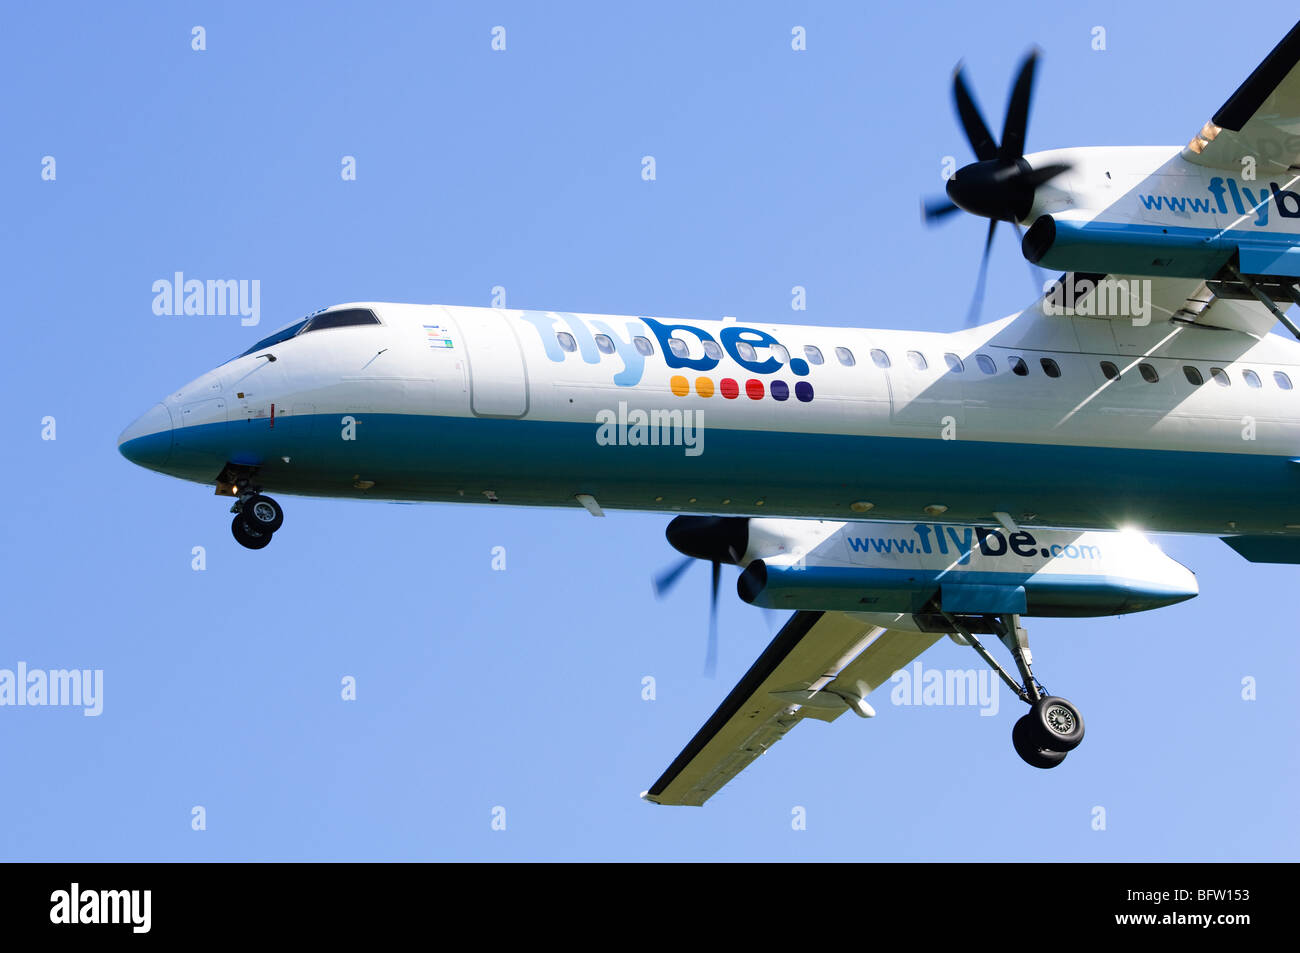 Bombardier Dash 8 operated by Flybe on approach for landing at Birmingham Airport, UK. - Stock Image